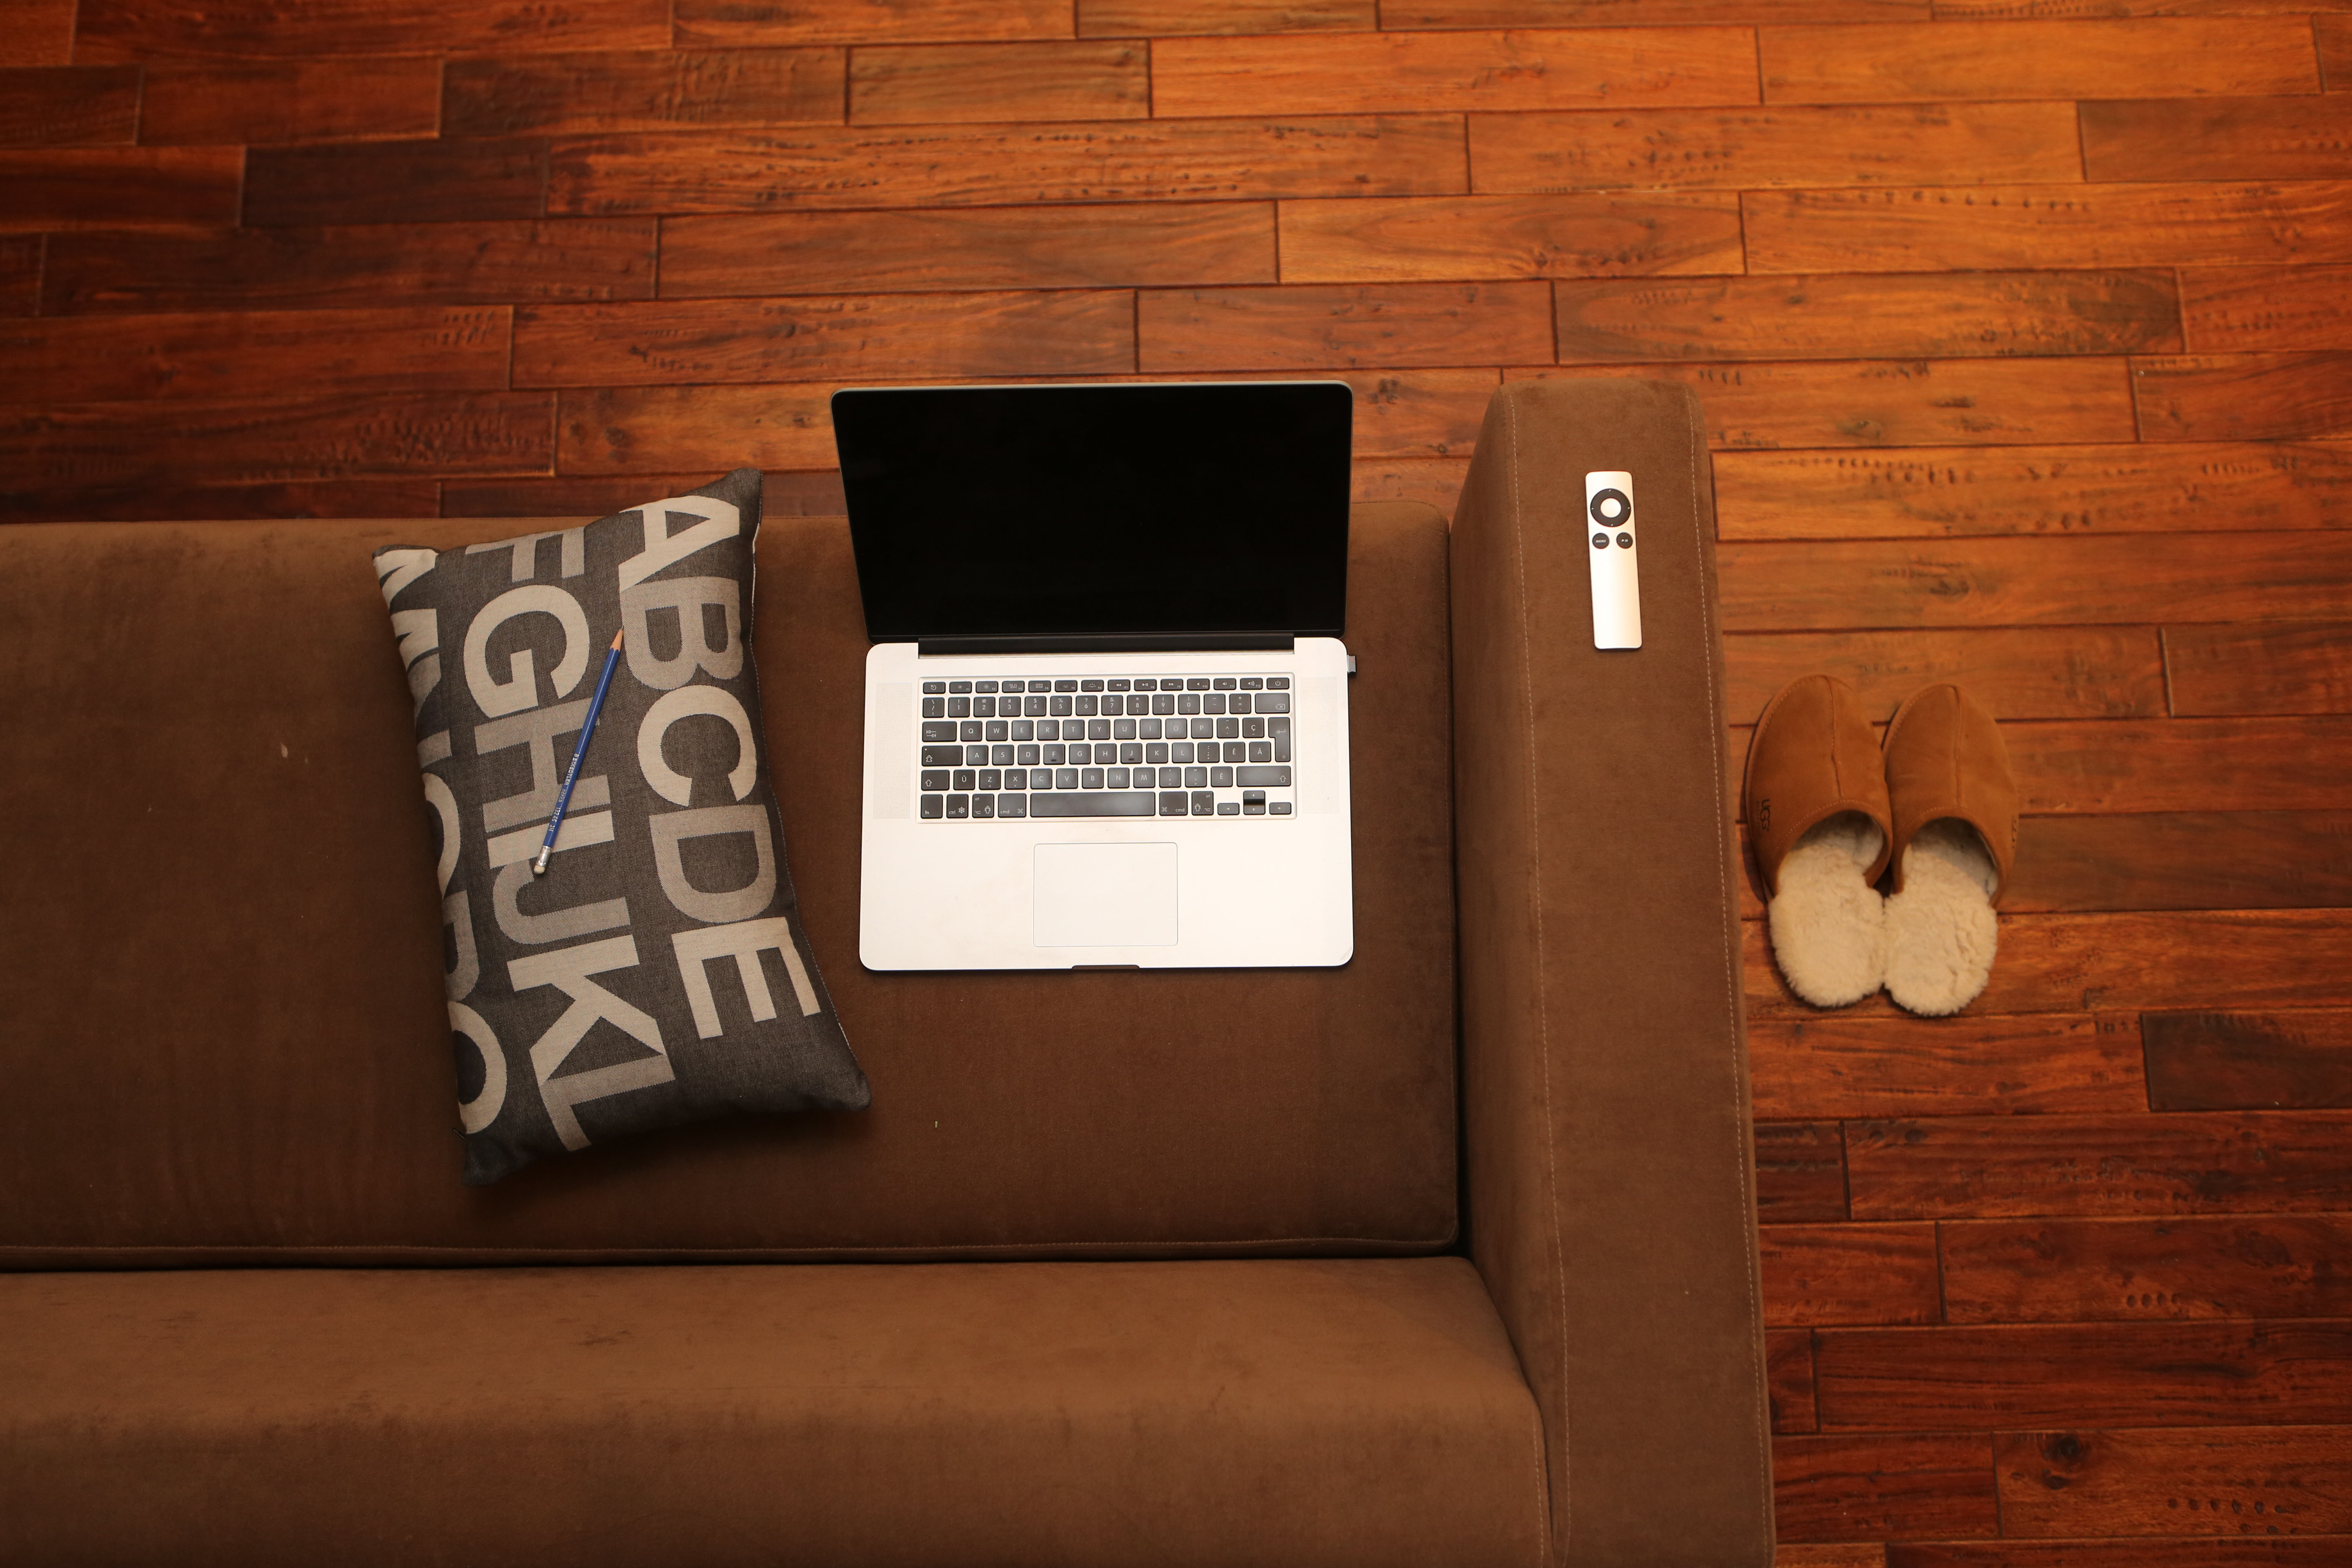 Couch On Wooden Floor, Computer, Couch, Floor, Laptop, HQ Photo